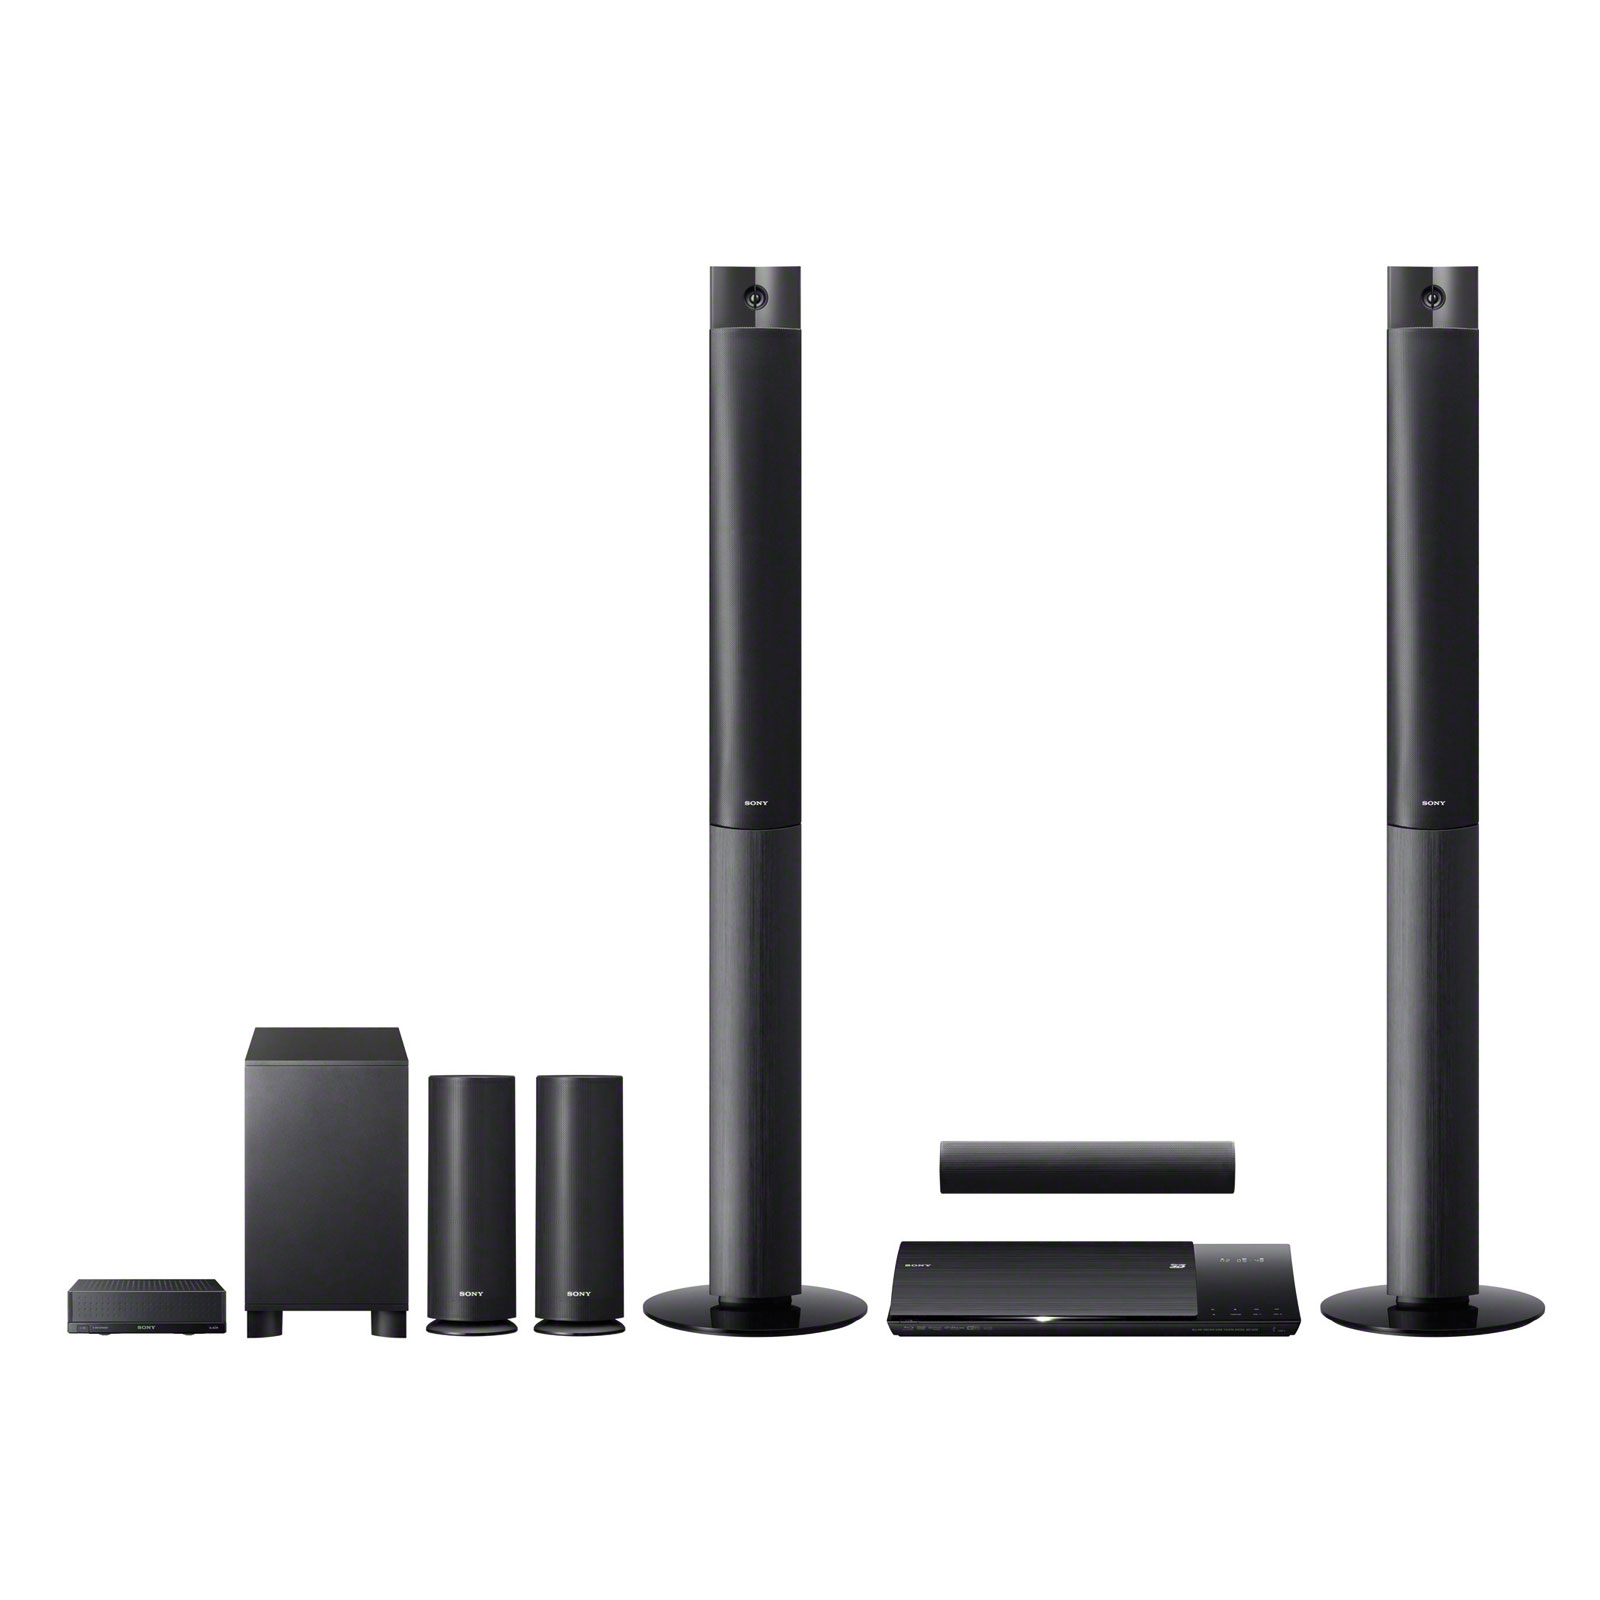 Online Shopping Ideas: Sony 3D Blu-ray Home Theater System